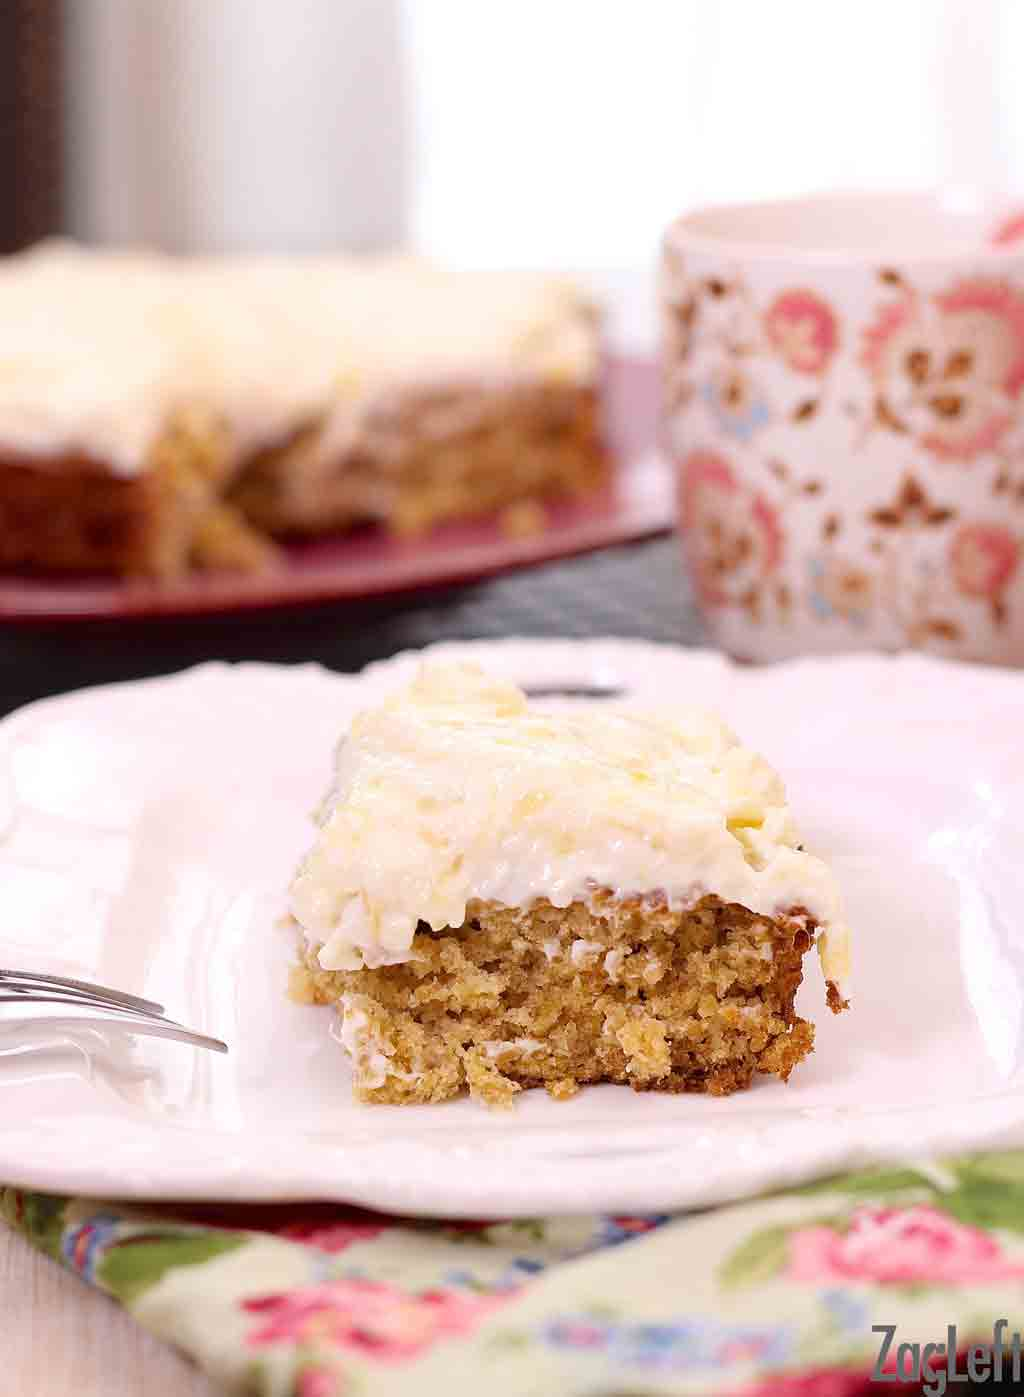 Closeup of a slice of pineapple oat cake with cream cheese frosting on a plate with a floral napkin and a coffee mug in the background